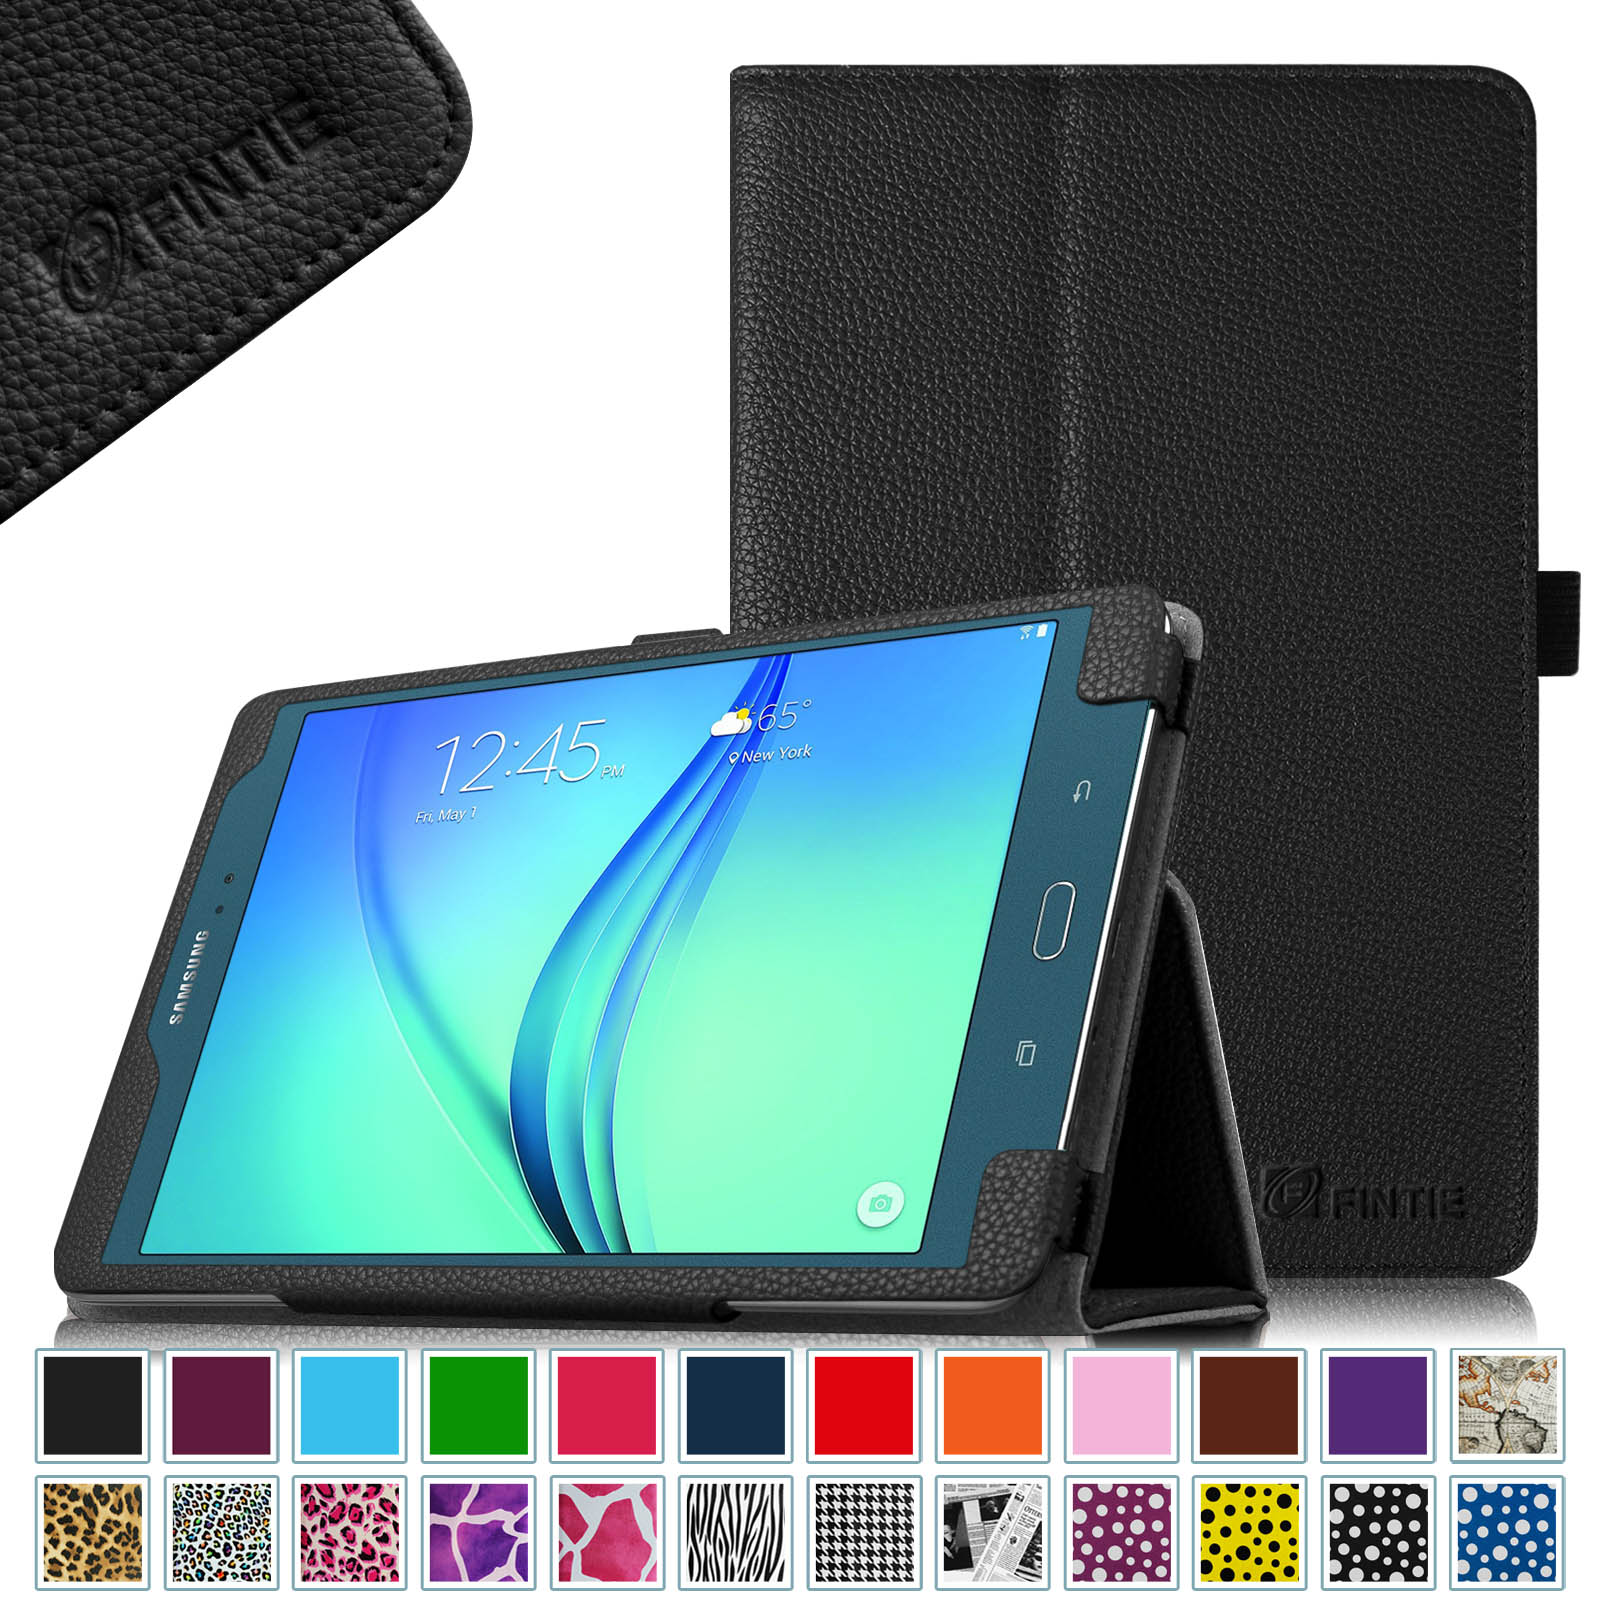 For Samsung Galaxy Tab A 8.0 Case SM-T350 2015 Model - Fintie Premium Vegan Leather Folio Cover Auto Sleep/Wake, Black